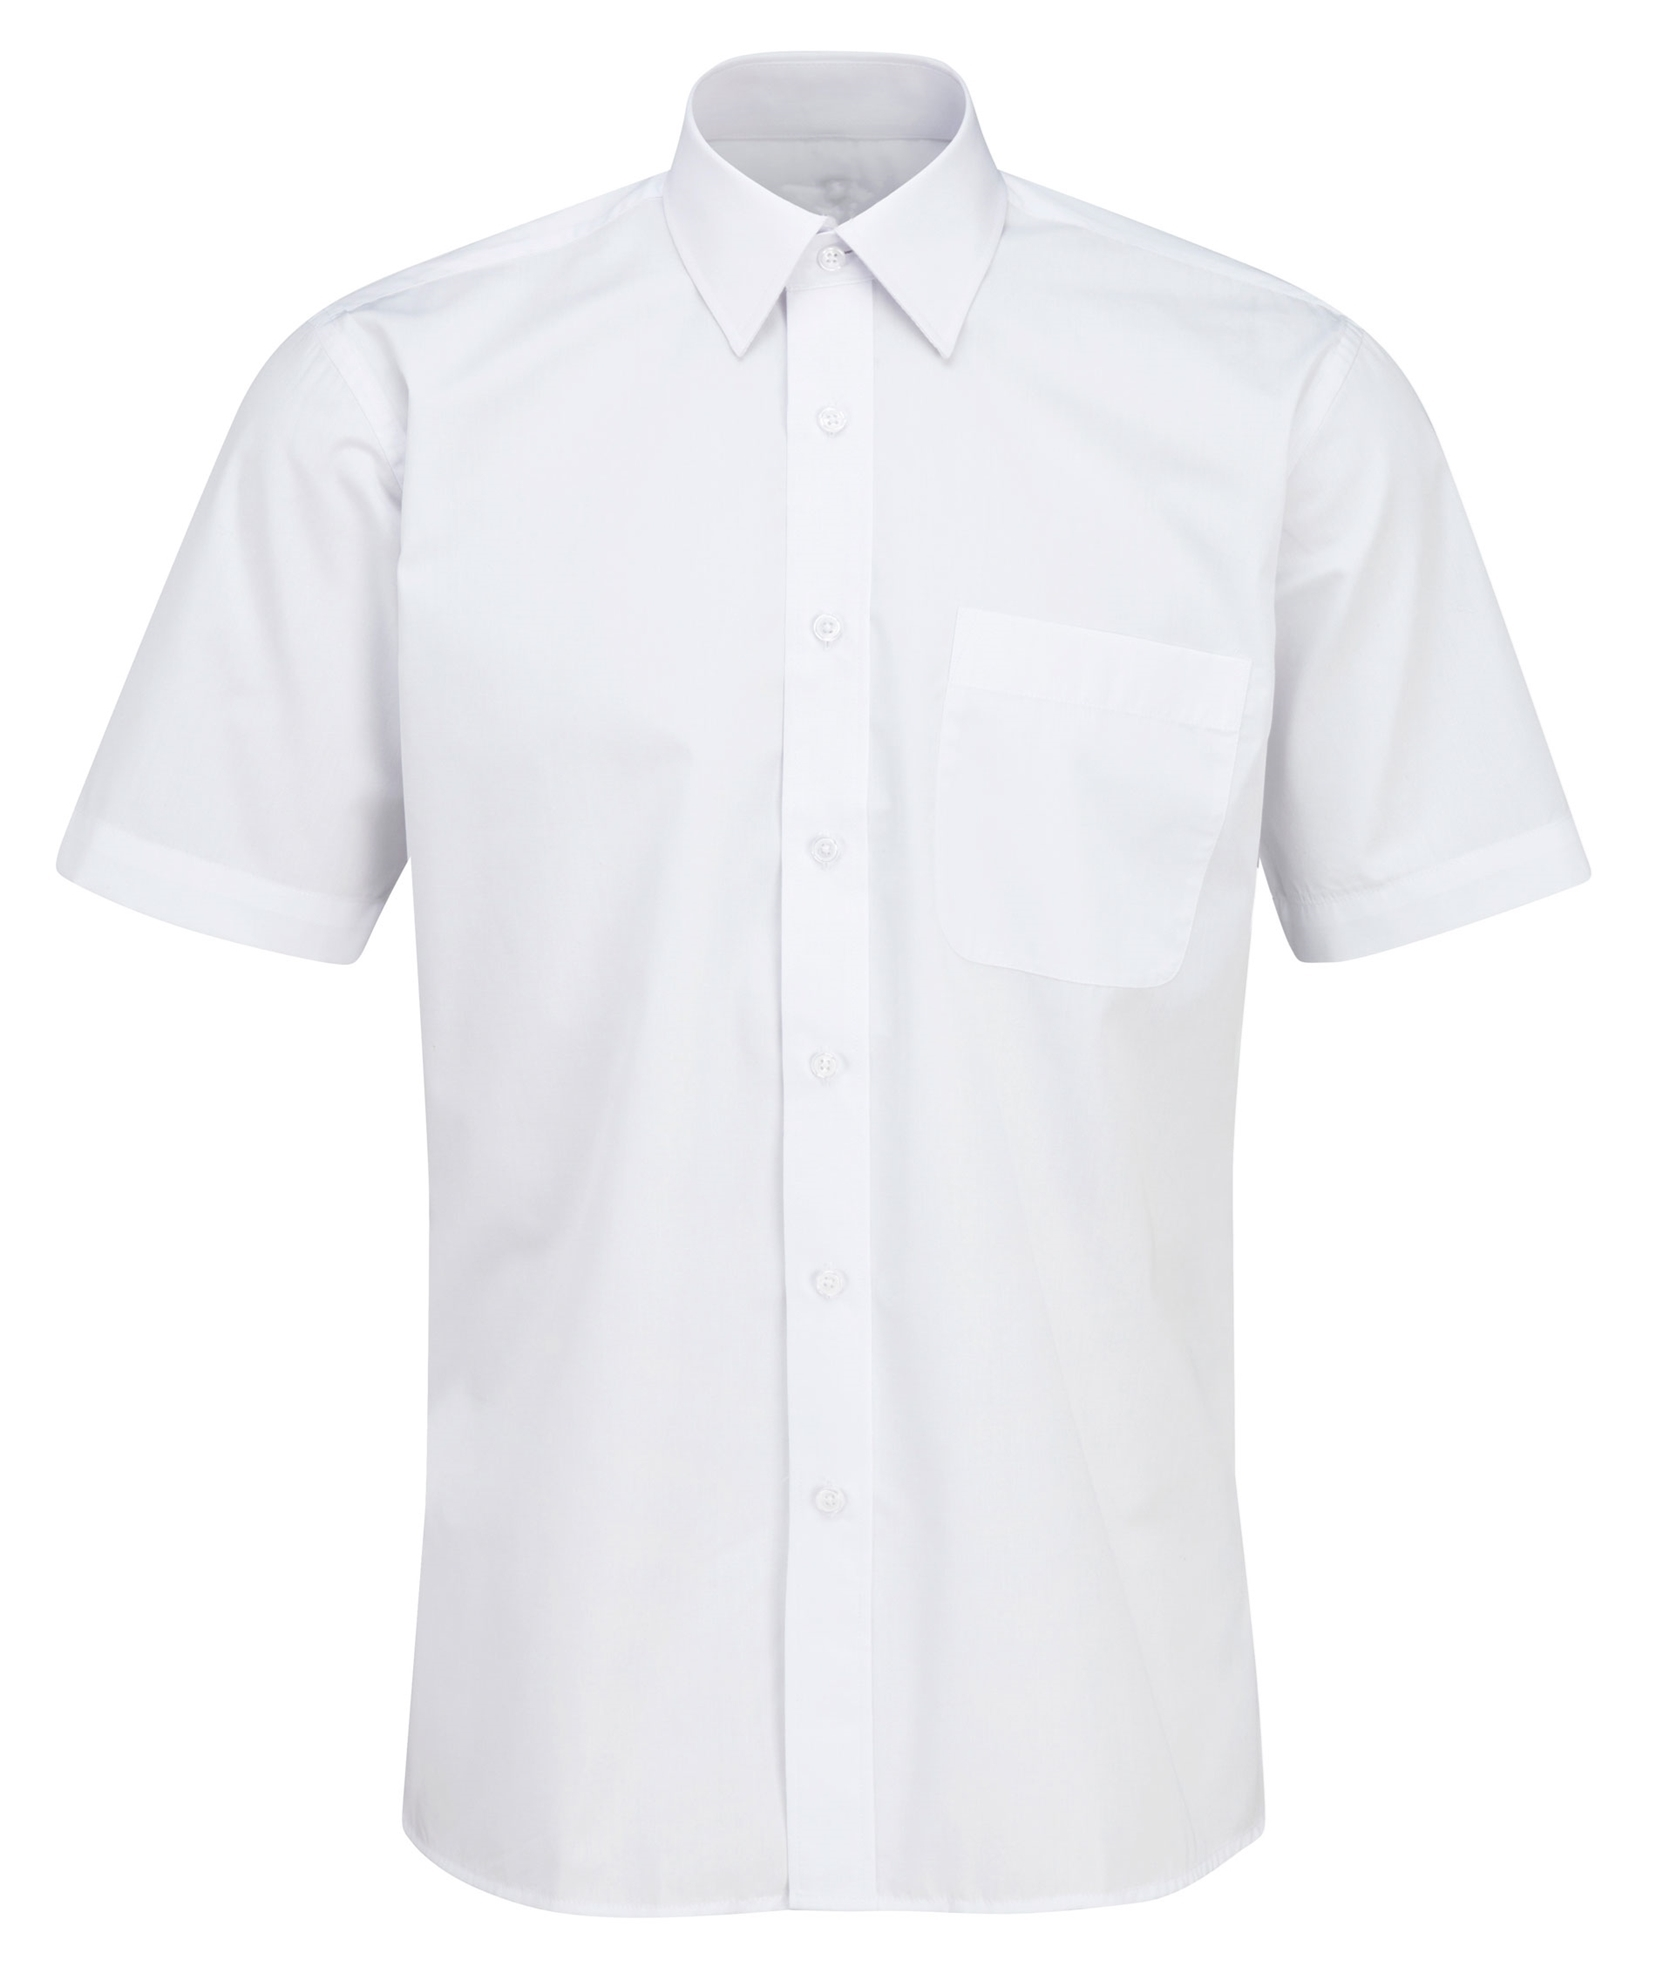 Picture of Male Short Sleeve Shirt - Plain White